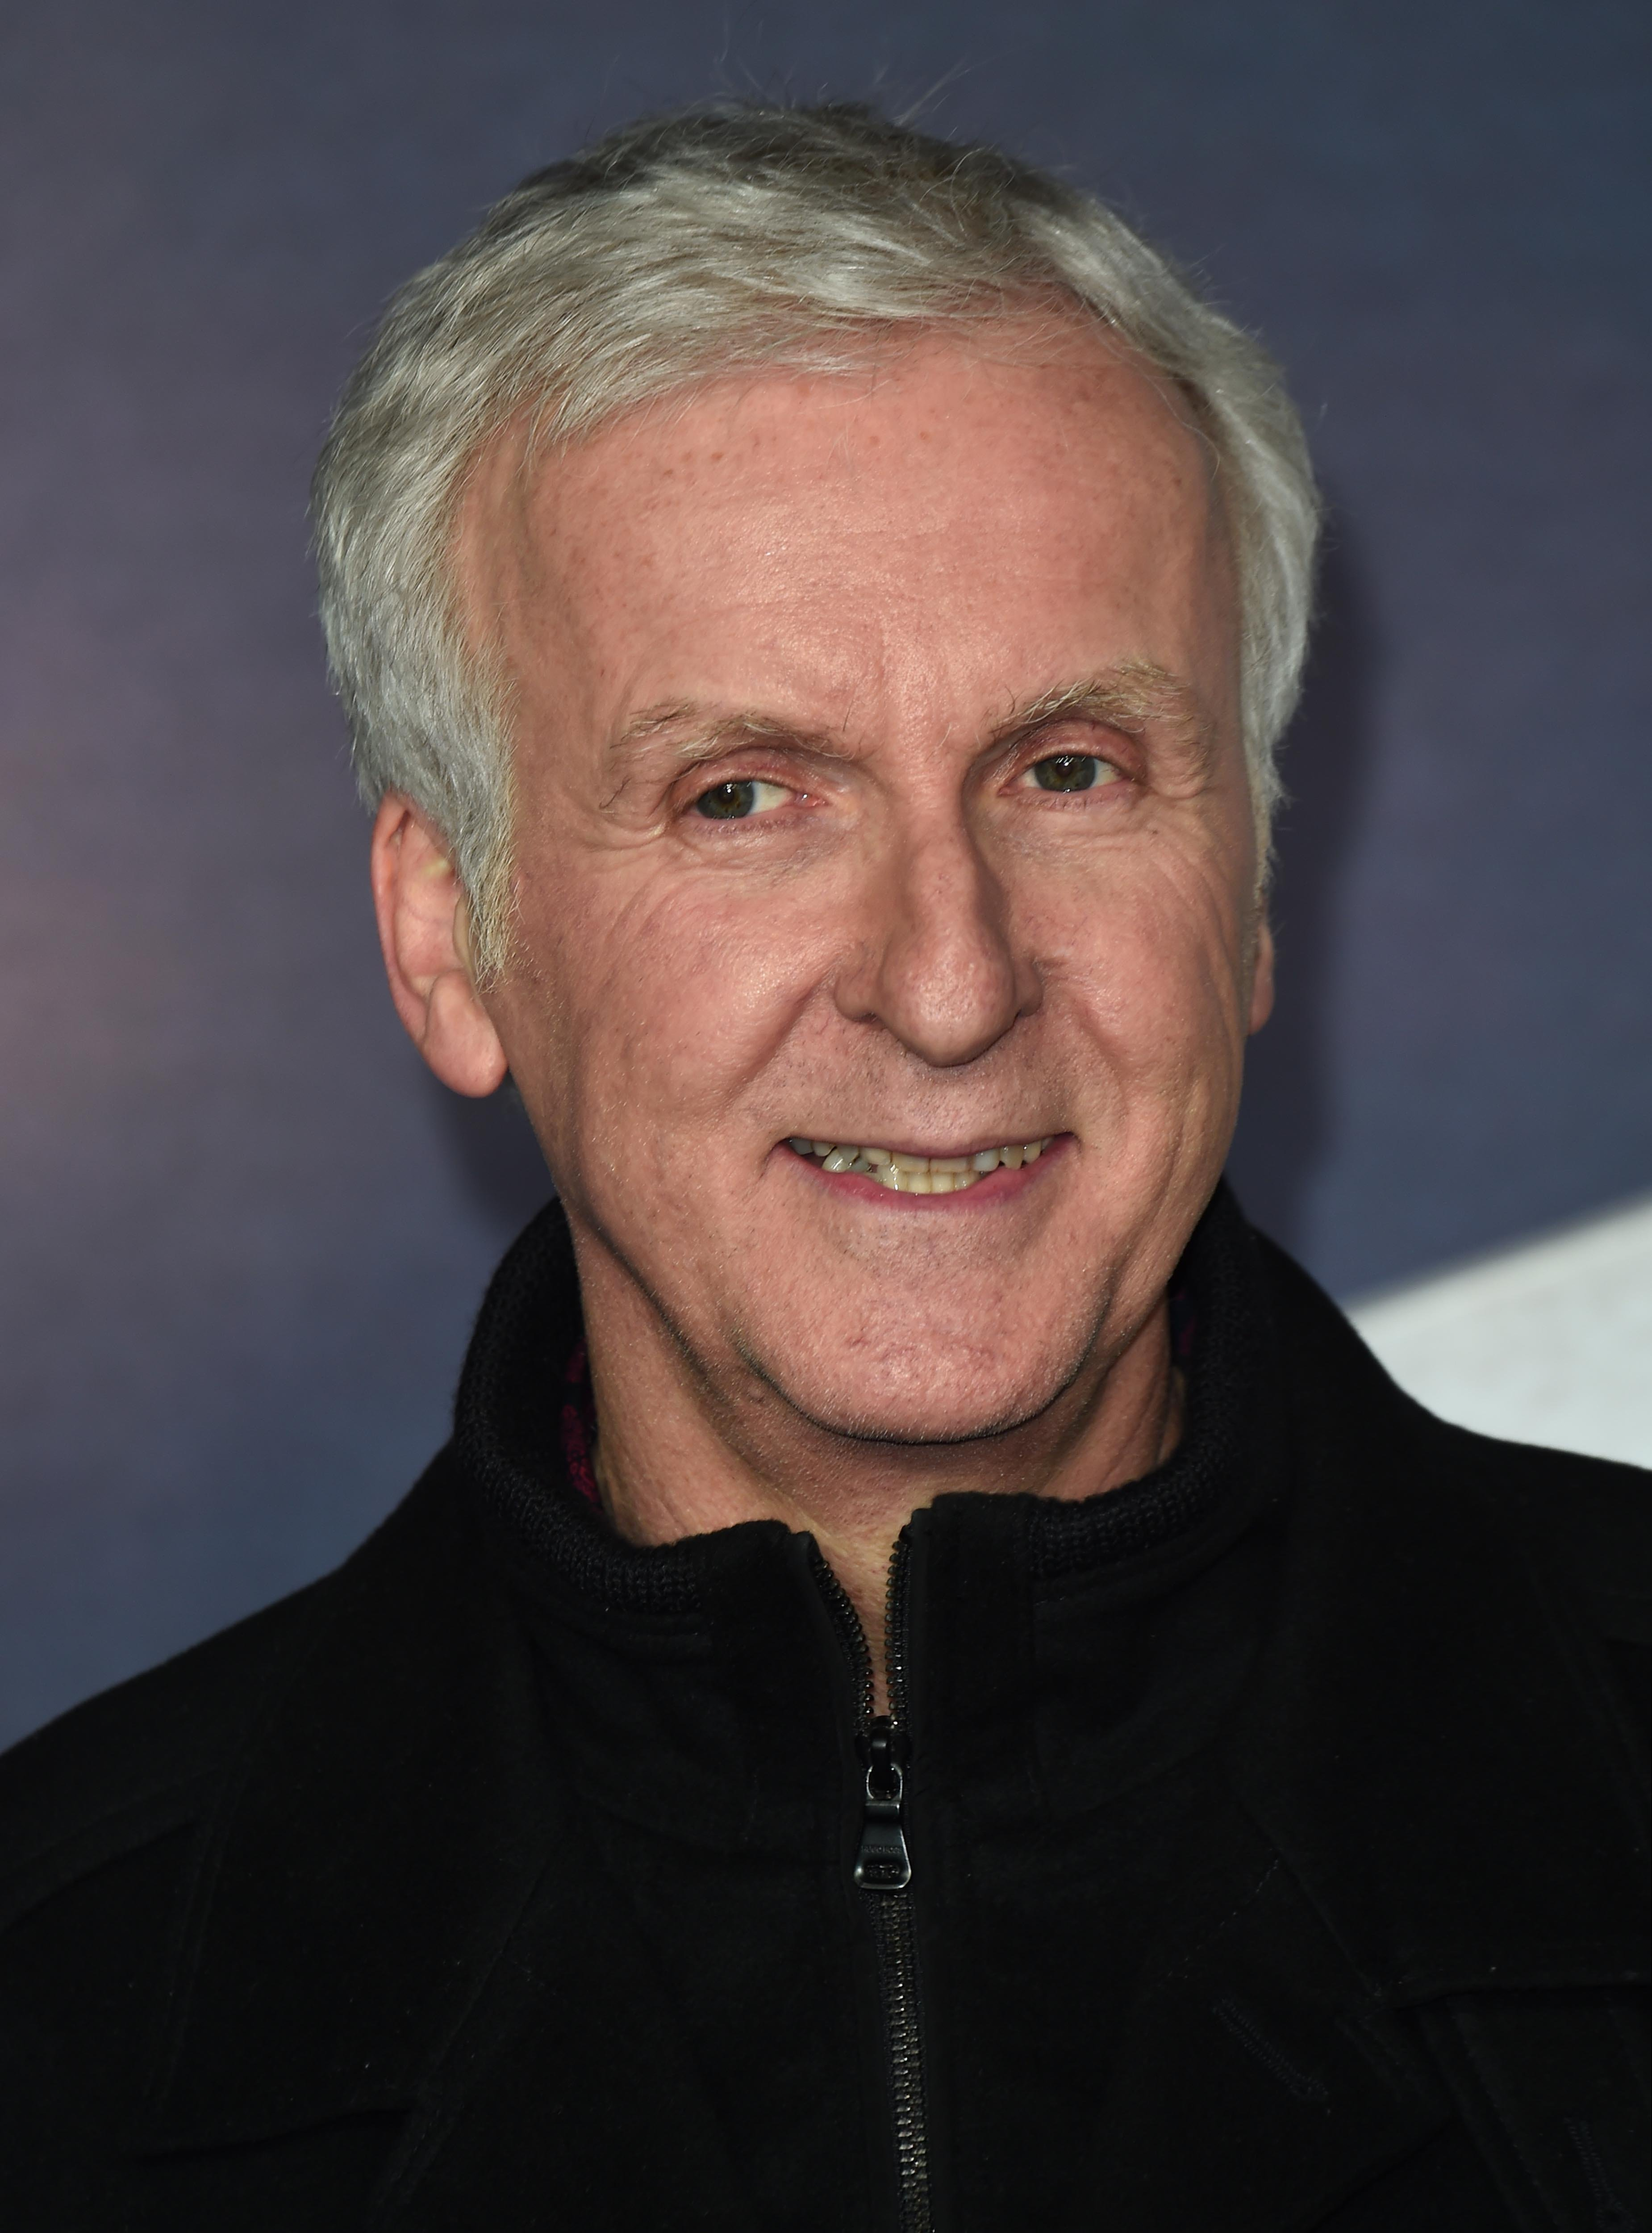 """James Cameron attends the """"Alita: Battle Angel"""" world premiere at the Odeon Leicester Square, Luxe Cinema on January 31, 2019. 